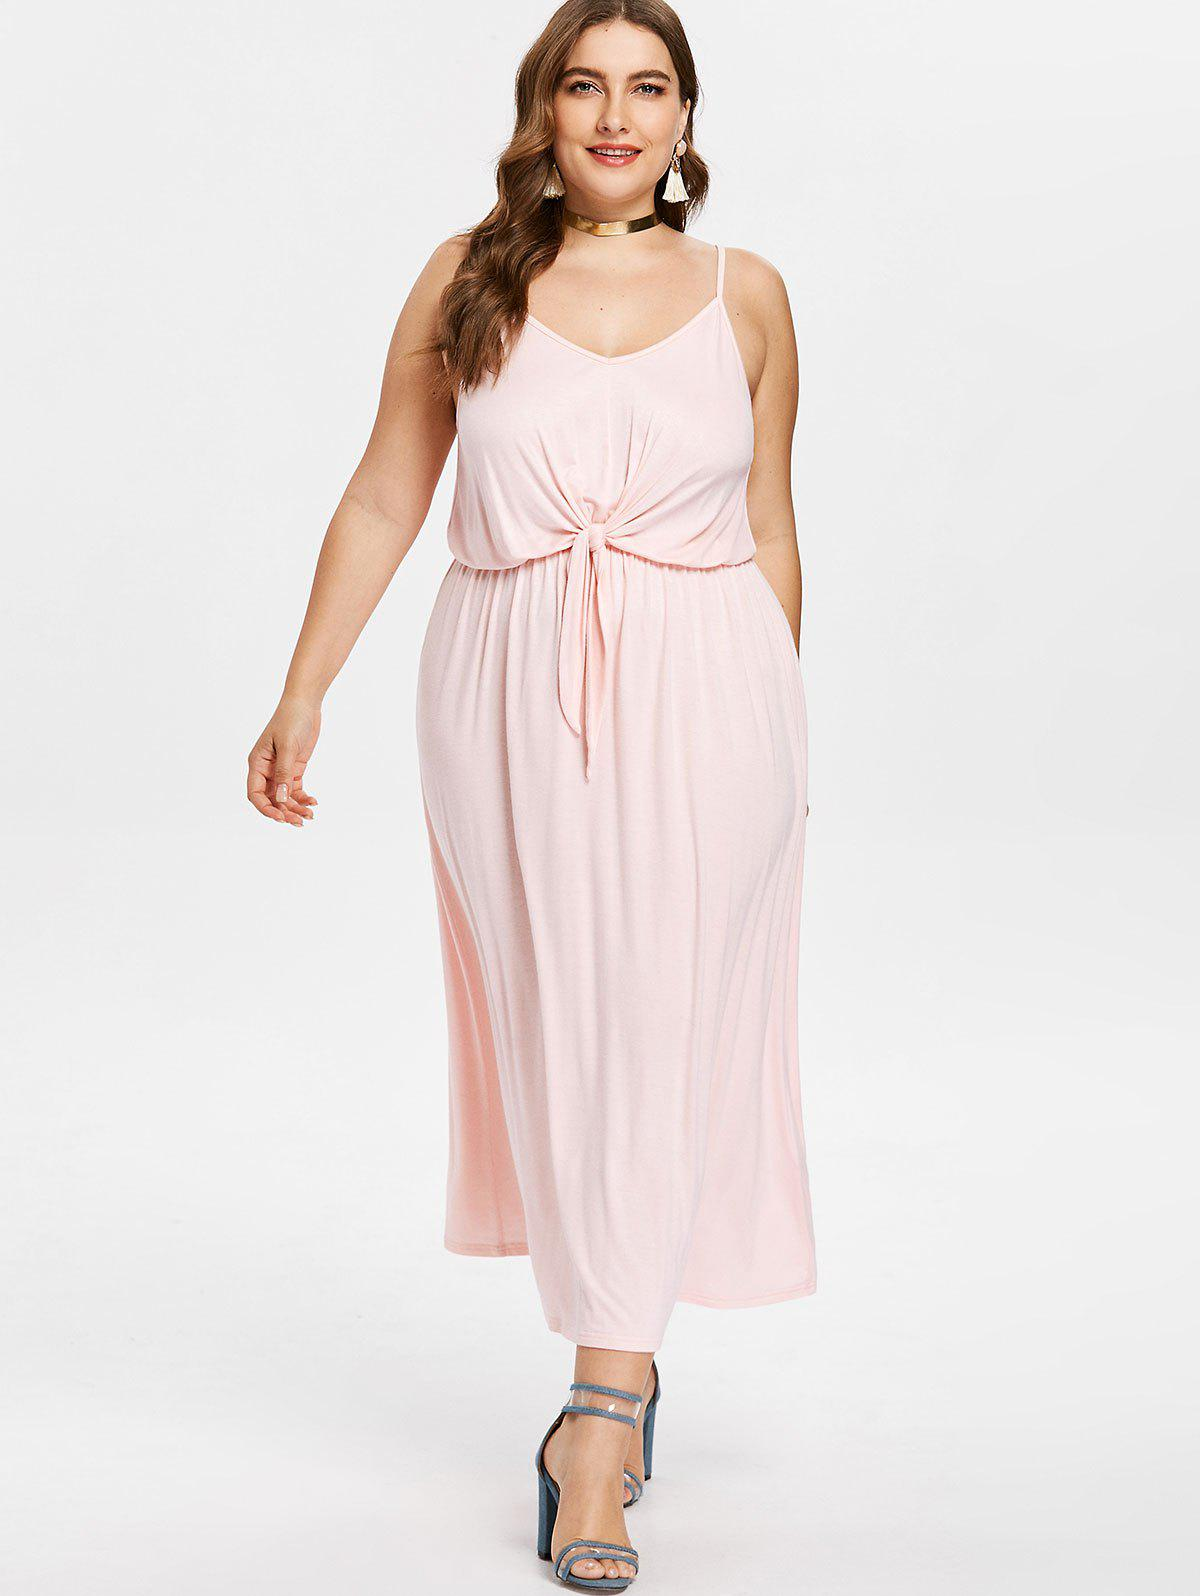 Robe Mi-longue en Camisole - Chewing Gum Rose 1X